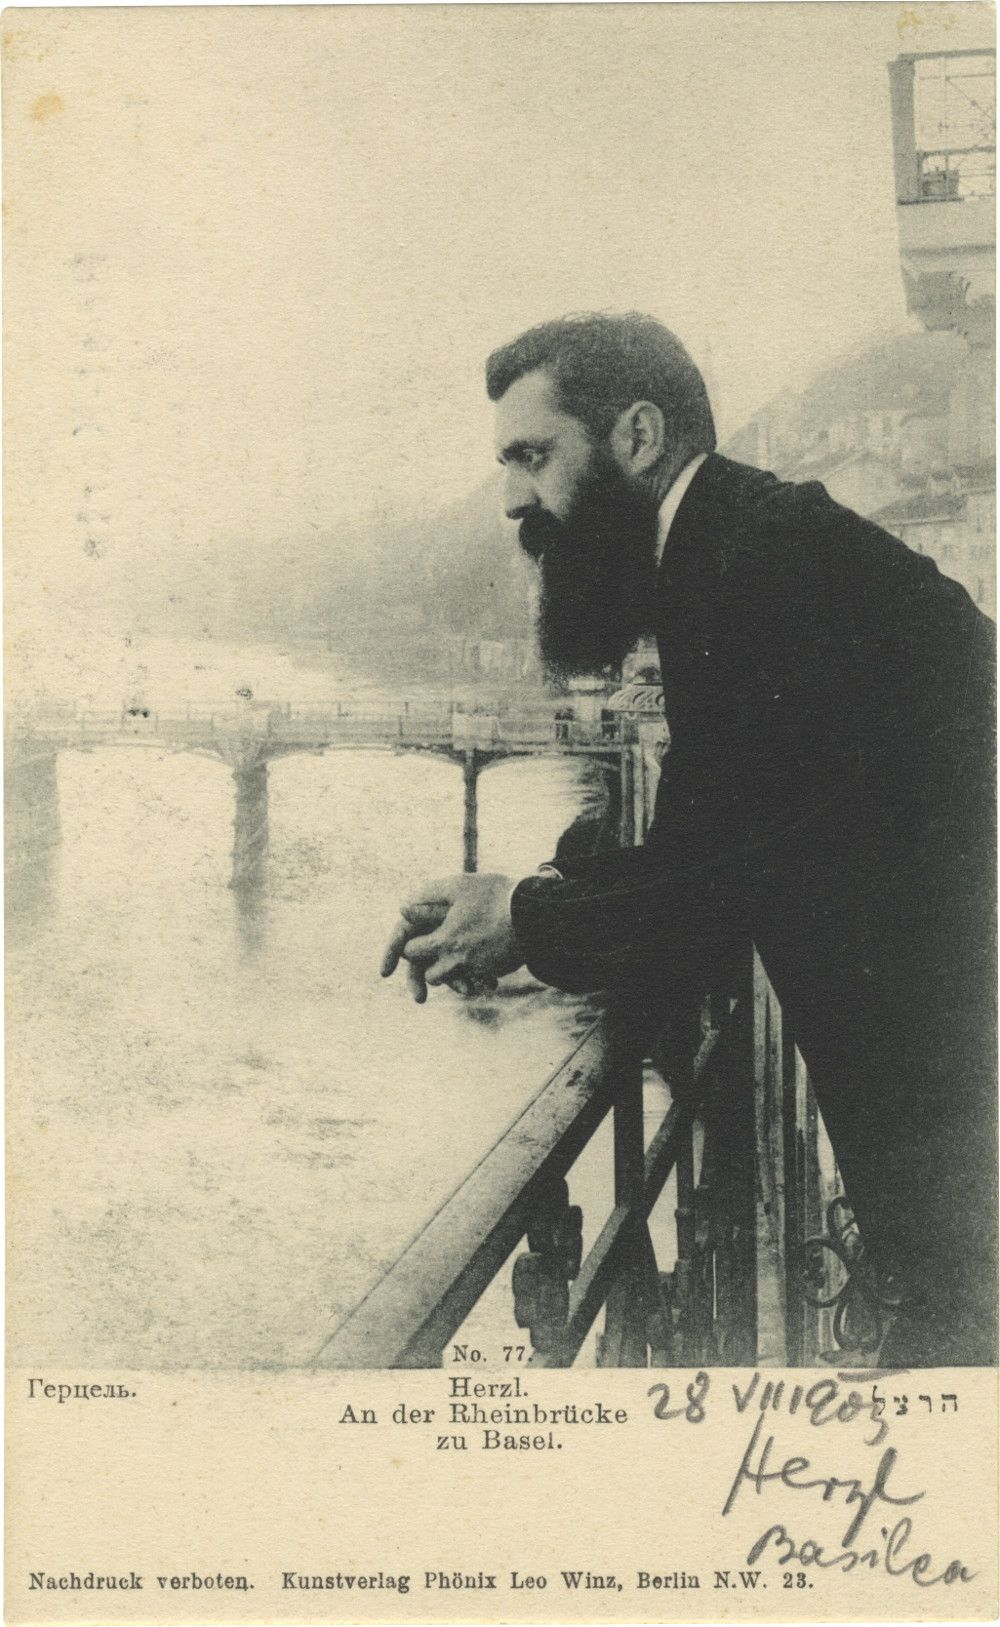 Theodor Herzl Signed Photograph, Taken in Basel, Switzerland